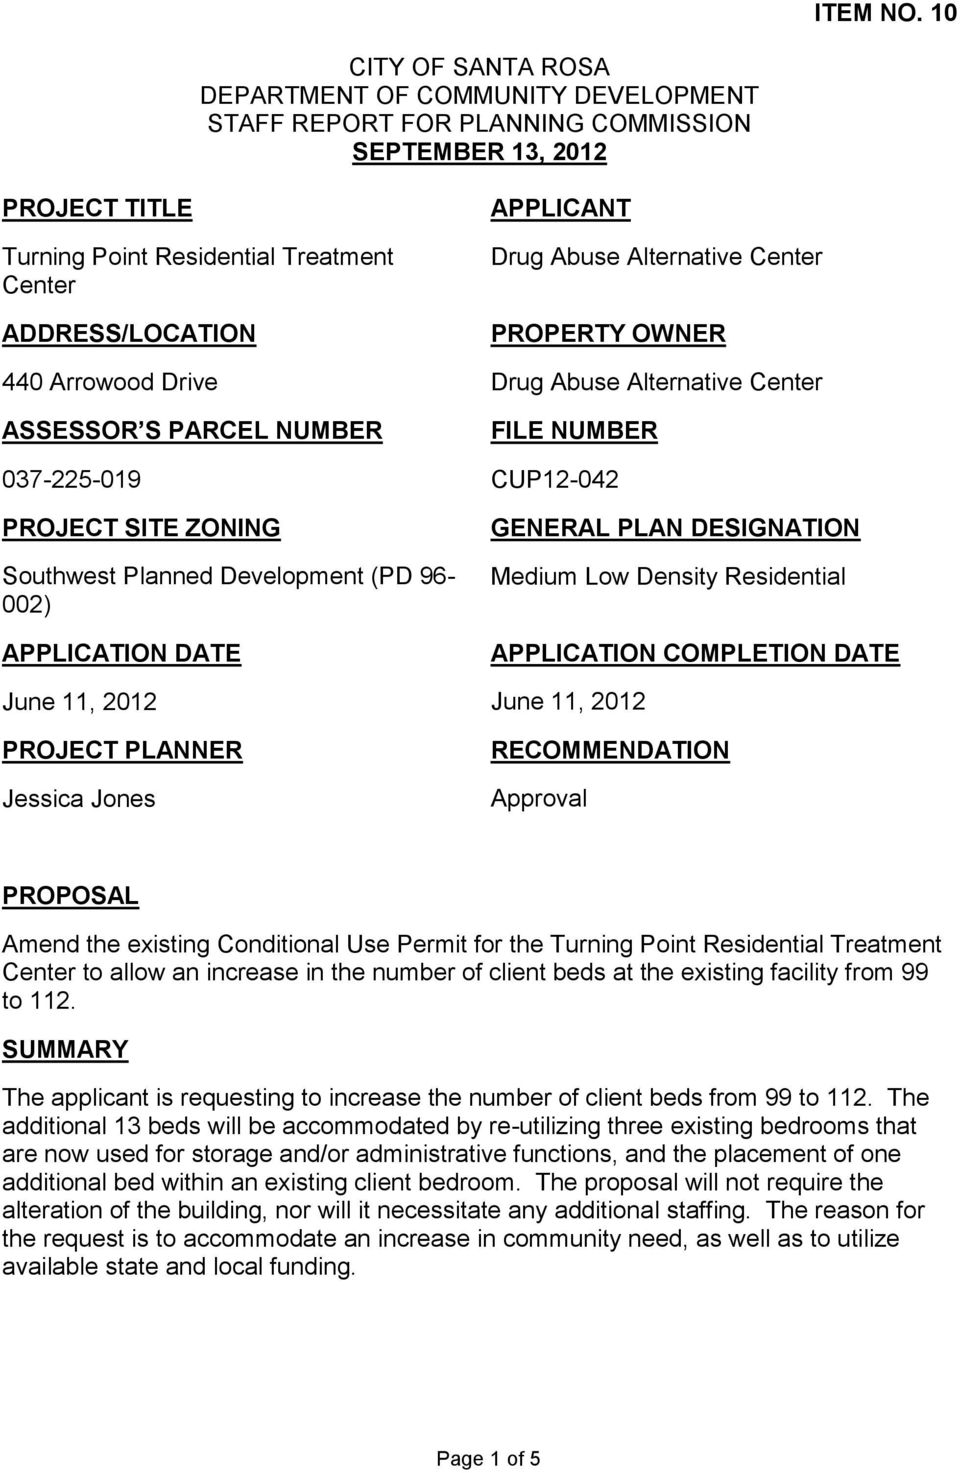 Arrowood Drive ASSESSOR S PARCEL NUMBER 037-225-019 PROJECT SITE ZONING Southwest Planned Development (PD 96-002) APPLICATION DATE June 11, 2012 PROJECT PLANNER Jessica Jones APPLICANT Drug Abuse